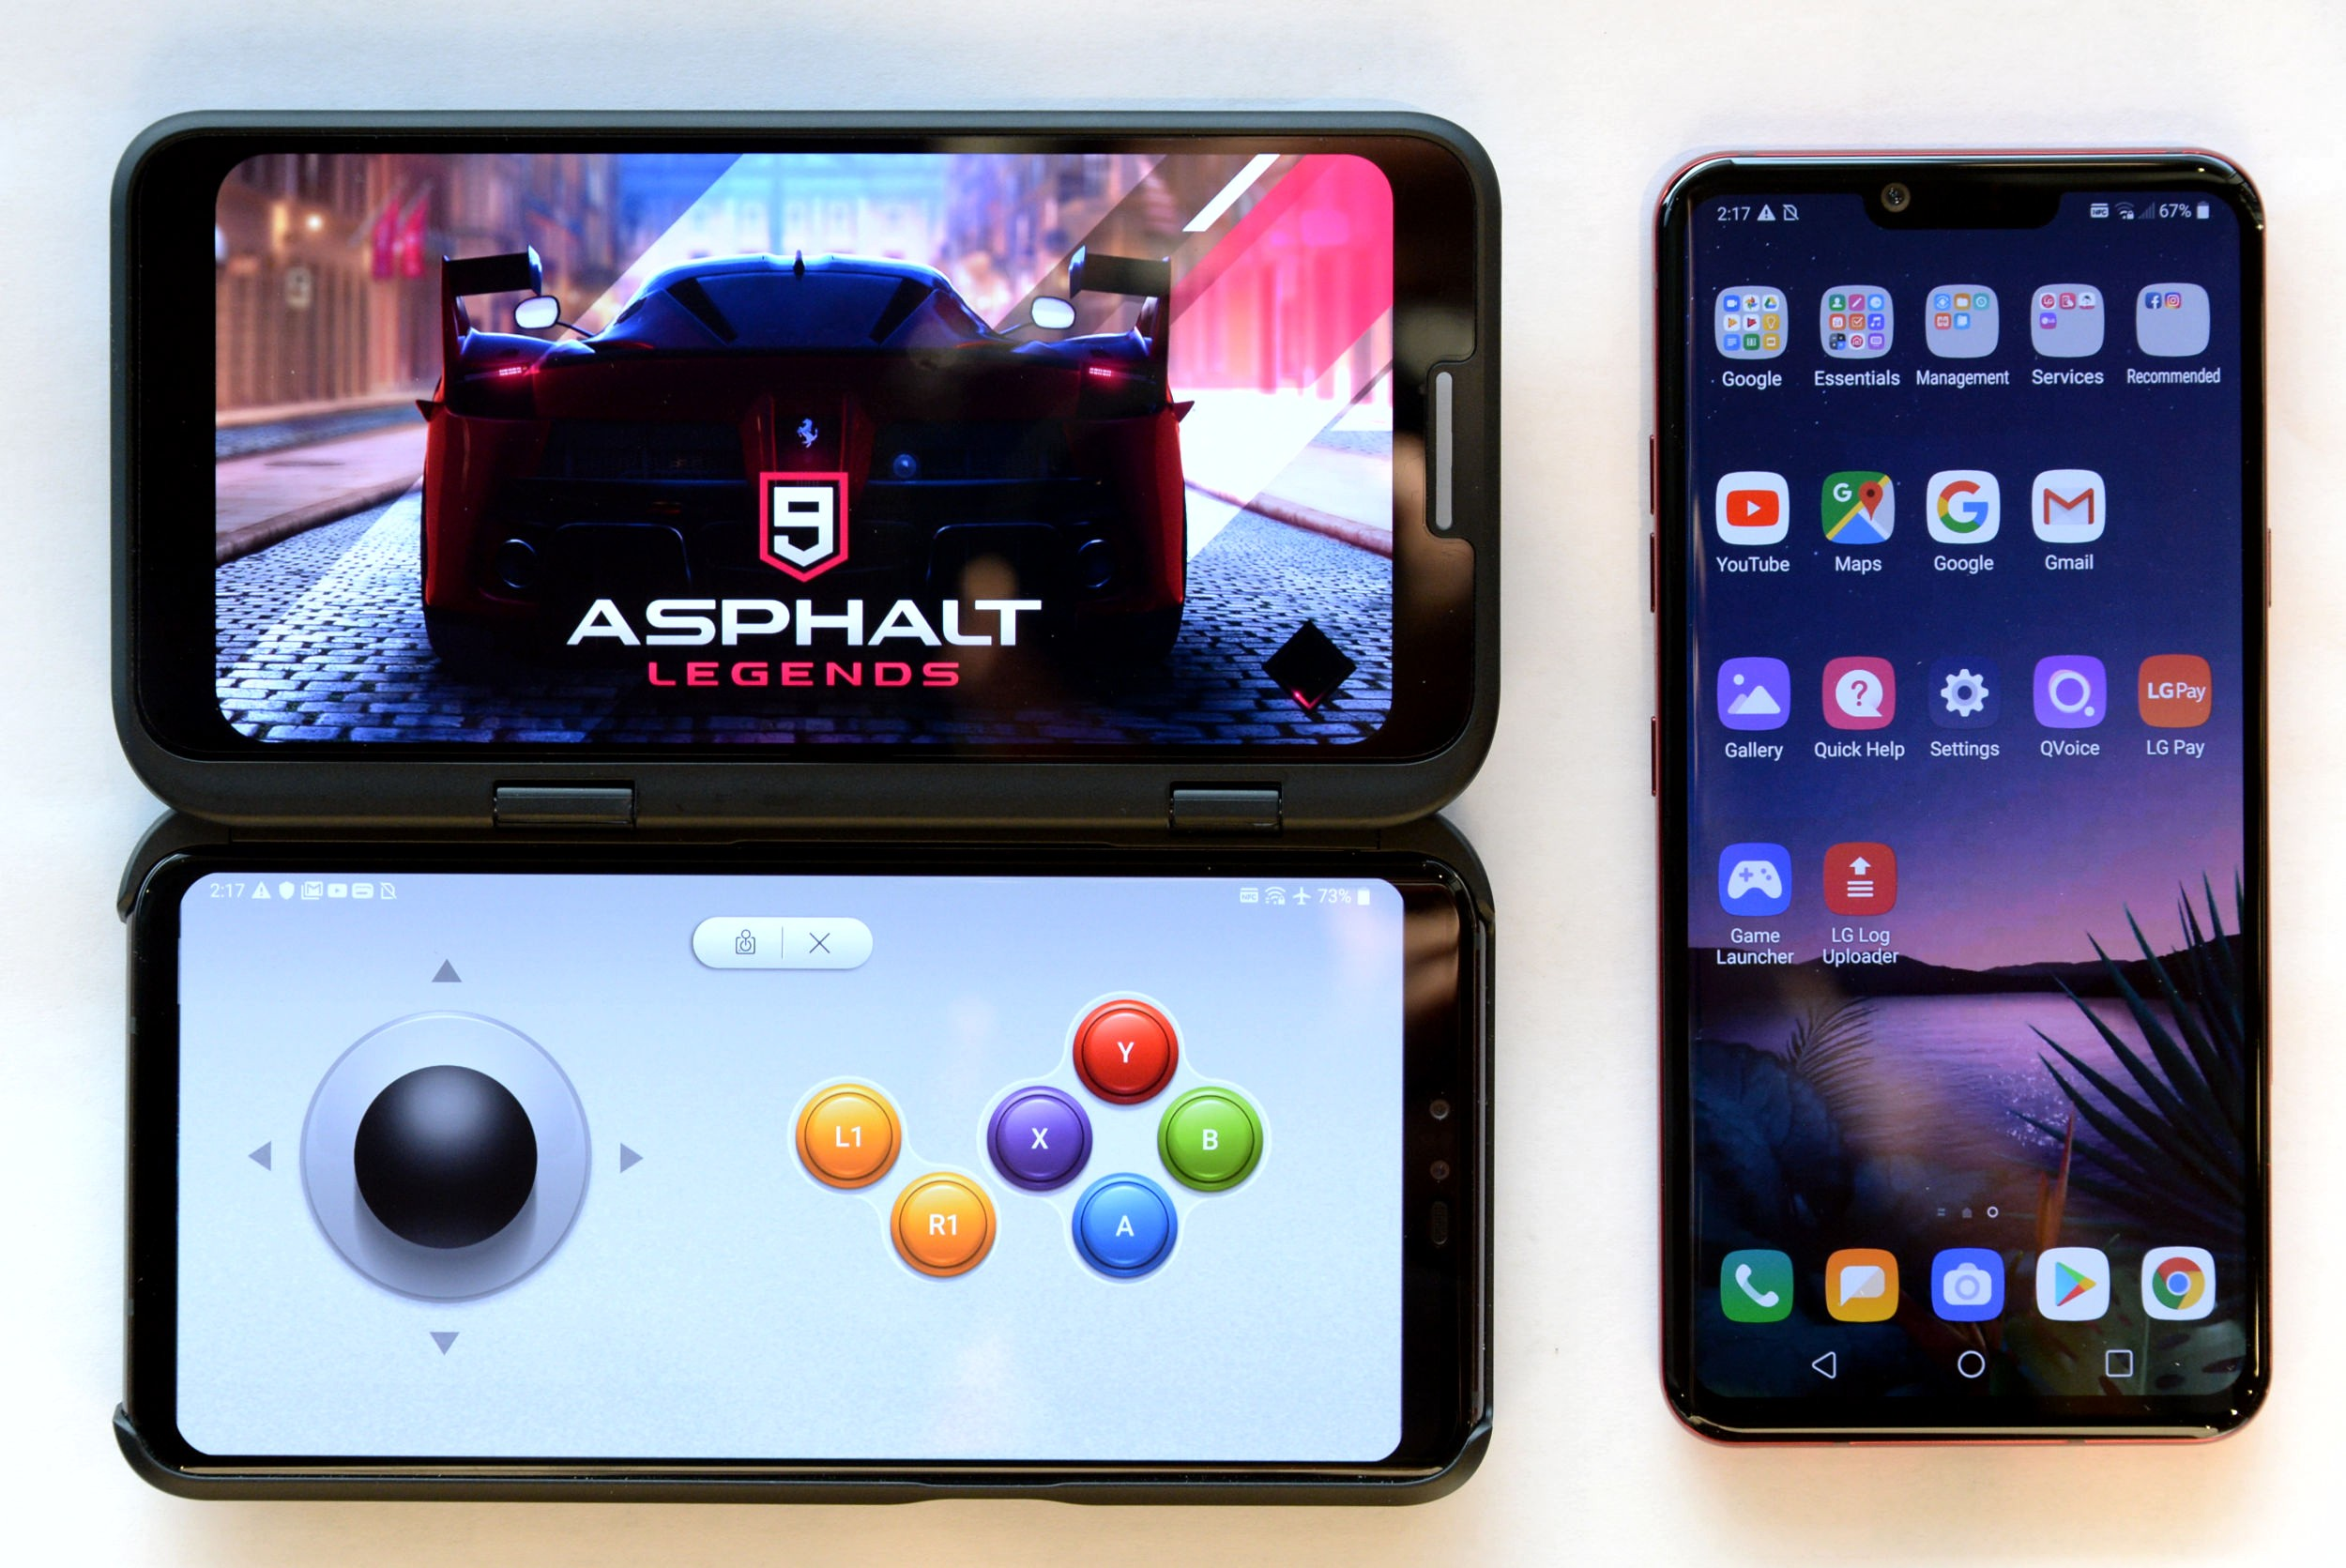 The front view of the LG V50 ThinQ 5G connected to the LG Dual Screen, with the Asphalt 9 Legends game on the top and LG Game Pad on the bottom, next to the LG G8 ThinQ